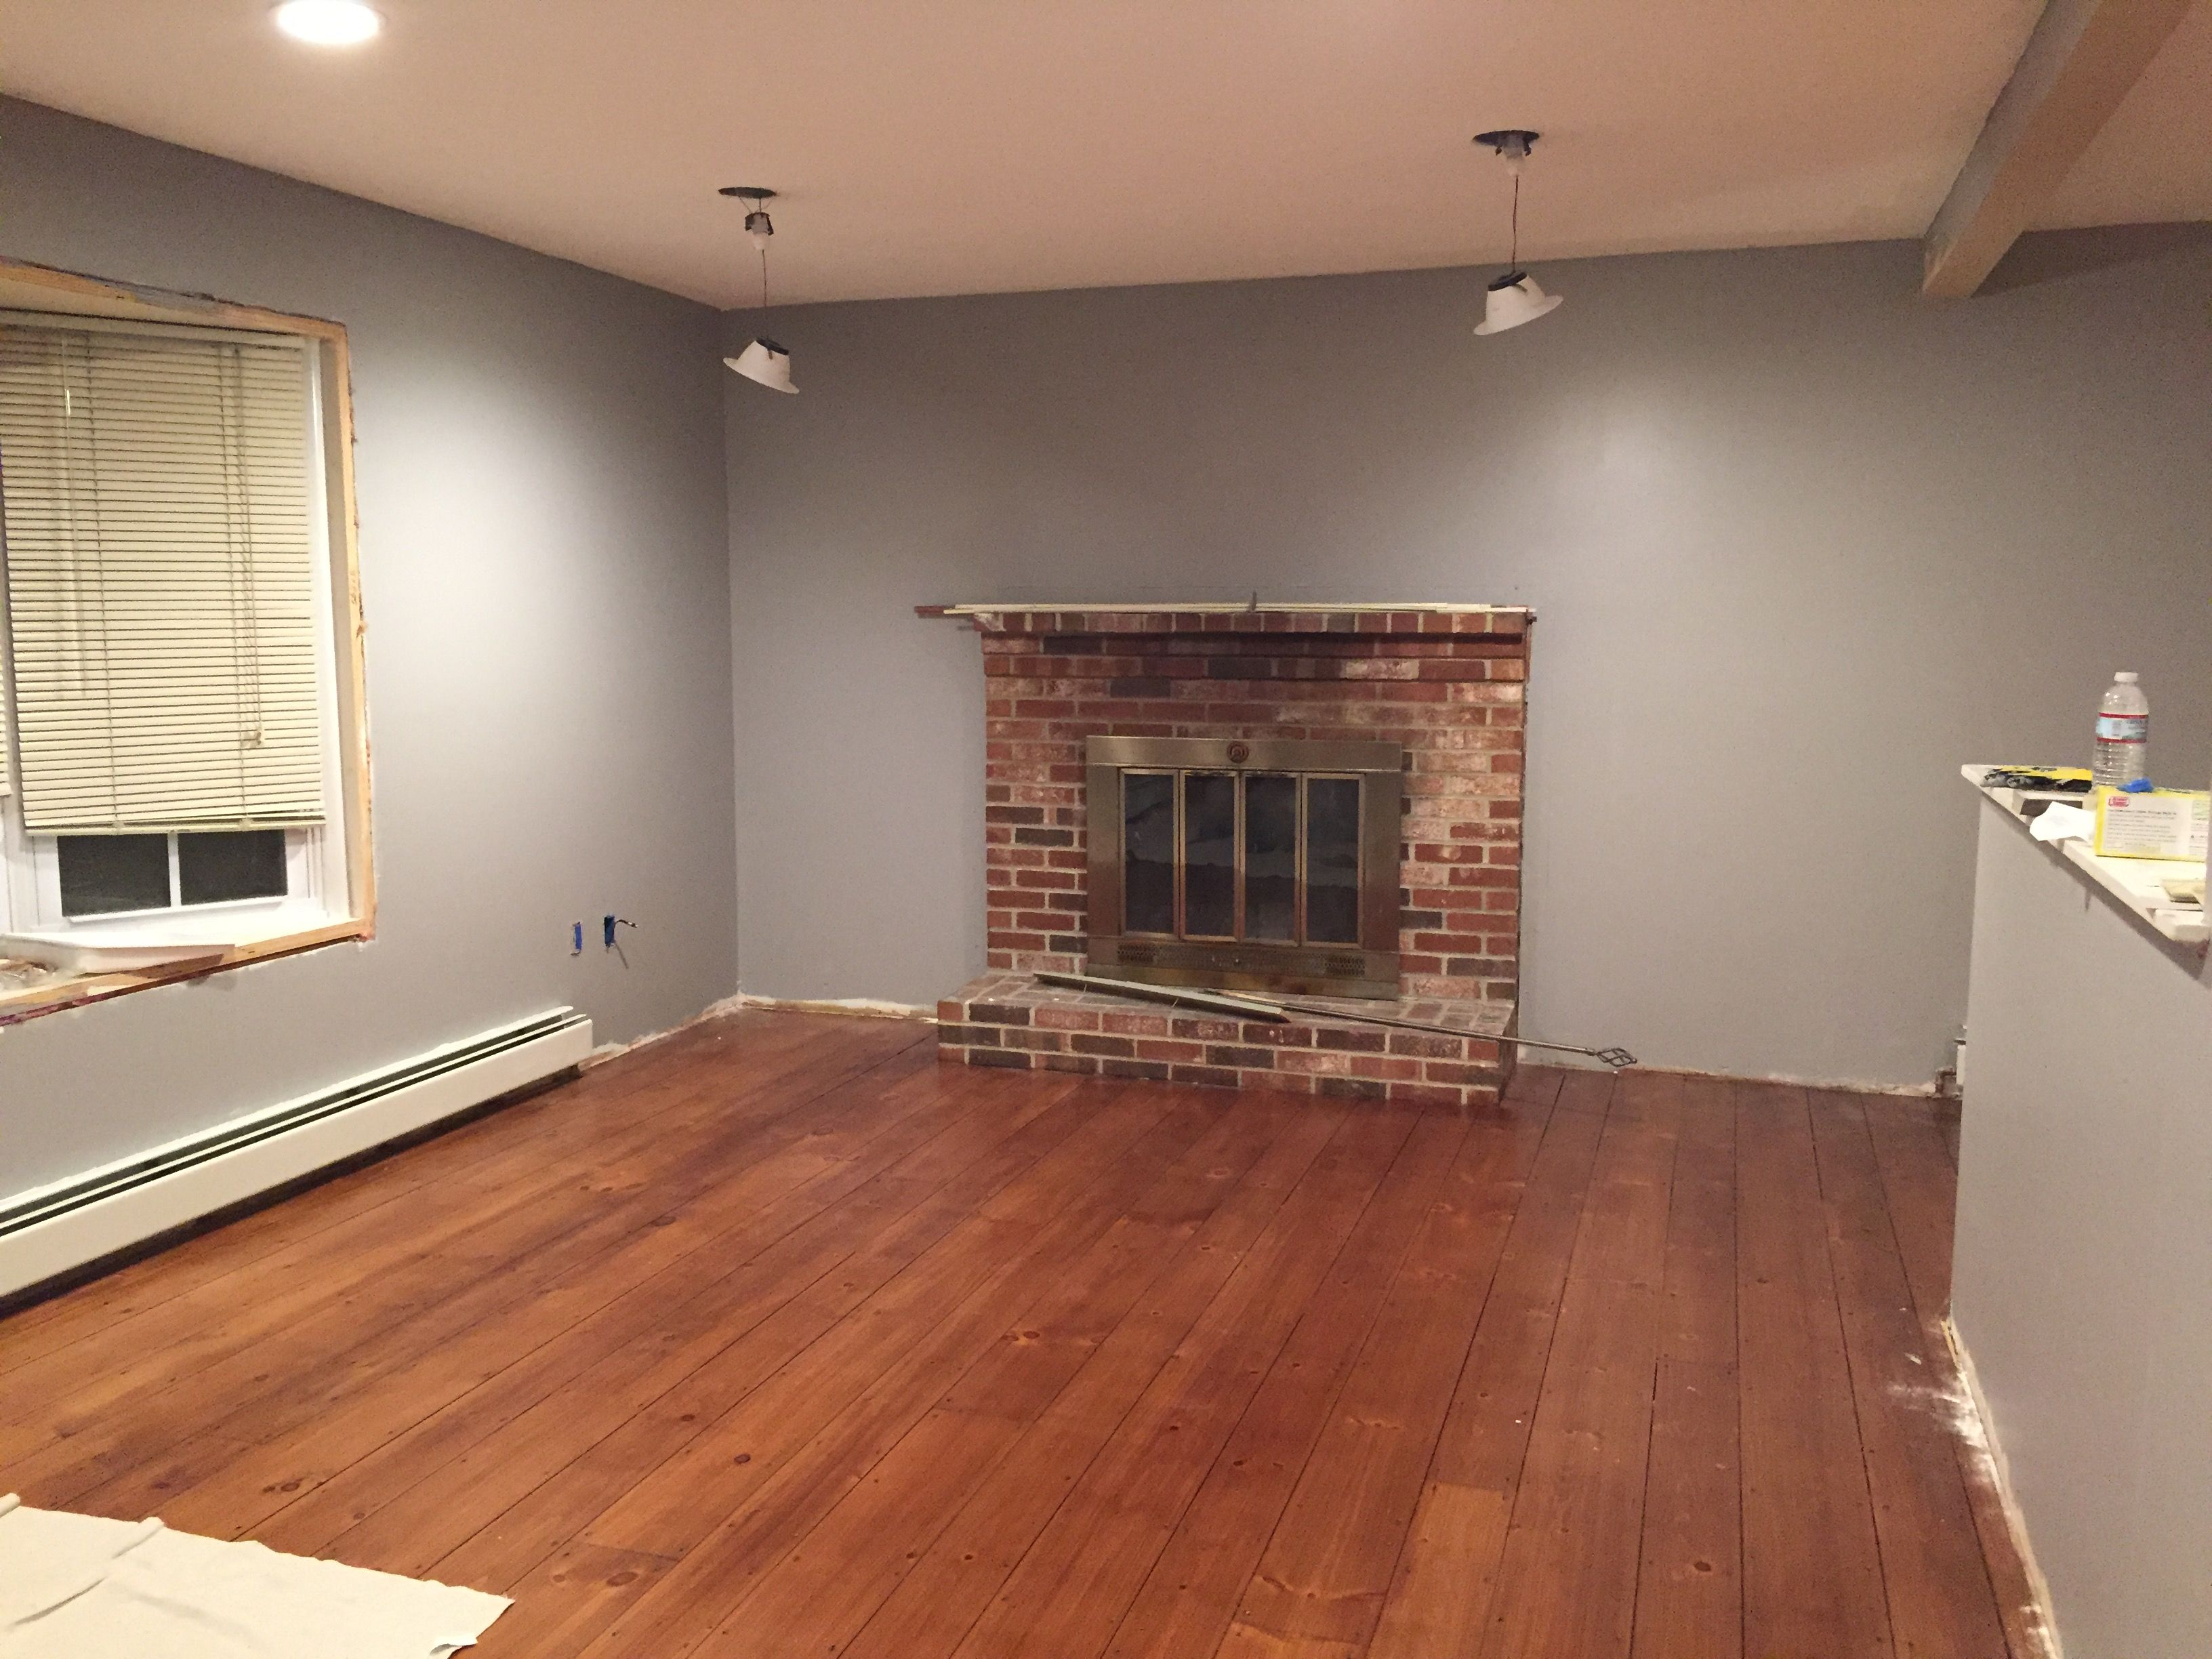 My Living Room Behr Ultra Flannel Gray In Eggshell We Used The Same Color For Adjoining Dining To Create A Large Open Feeling